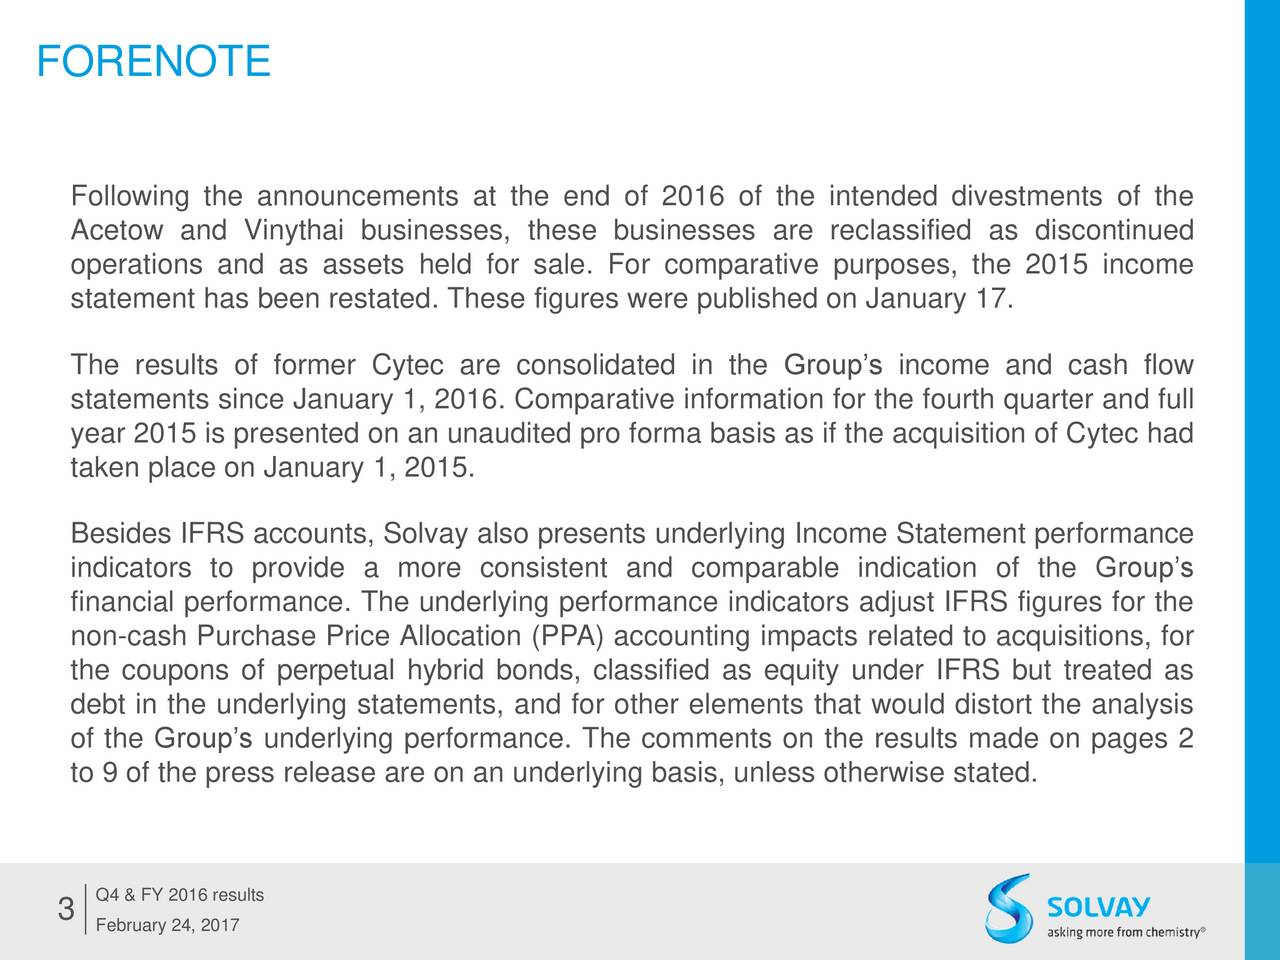 Following the announcements at the end of 2016 of the intended divestments of the Acetow and Vinythai businesses, these businesses are reclassified as discontinued operations and as assets held for sale. For comparative purposes, the 2015 income statement has been restated. These figures were published on January 17. The results of former Cytec are consolidated in the Groups income and cash flow statements since January 1, 2016. Comparative information for the fourth quarter and full year 2015 is presented on an unaudited pro forma basis as if the acquisition of Cytec had taken place on January 1, 2015. Besides IFRS accounts, Solvay also presents underlying Income Statement performance indicators to provide a more consistent and comparable indication of the Groups financial performance. The underlying performance indicators adjust IFRS figures for the non-cash Purchase Price Allocation (PPA) accounting impacts related to acquisitions, for the coupons of perpetual hybrid bonds, classified as equity under IFRS but treated as debt in the underlying statements, and for other elements that would distort the analysis of the Groups underlying performance. The comments on the results made on pages 2 to 9 of the press release are on an underlying basis, unless otherwise stated. 3 Q4 & FY 2016 results February 24, 2017